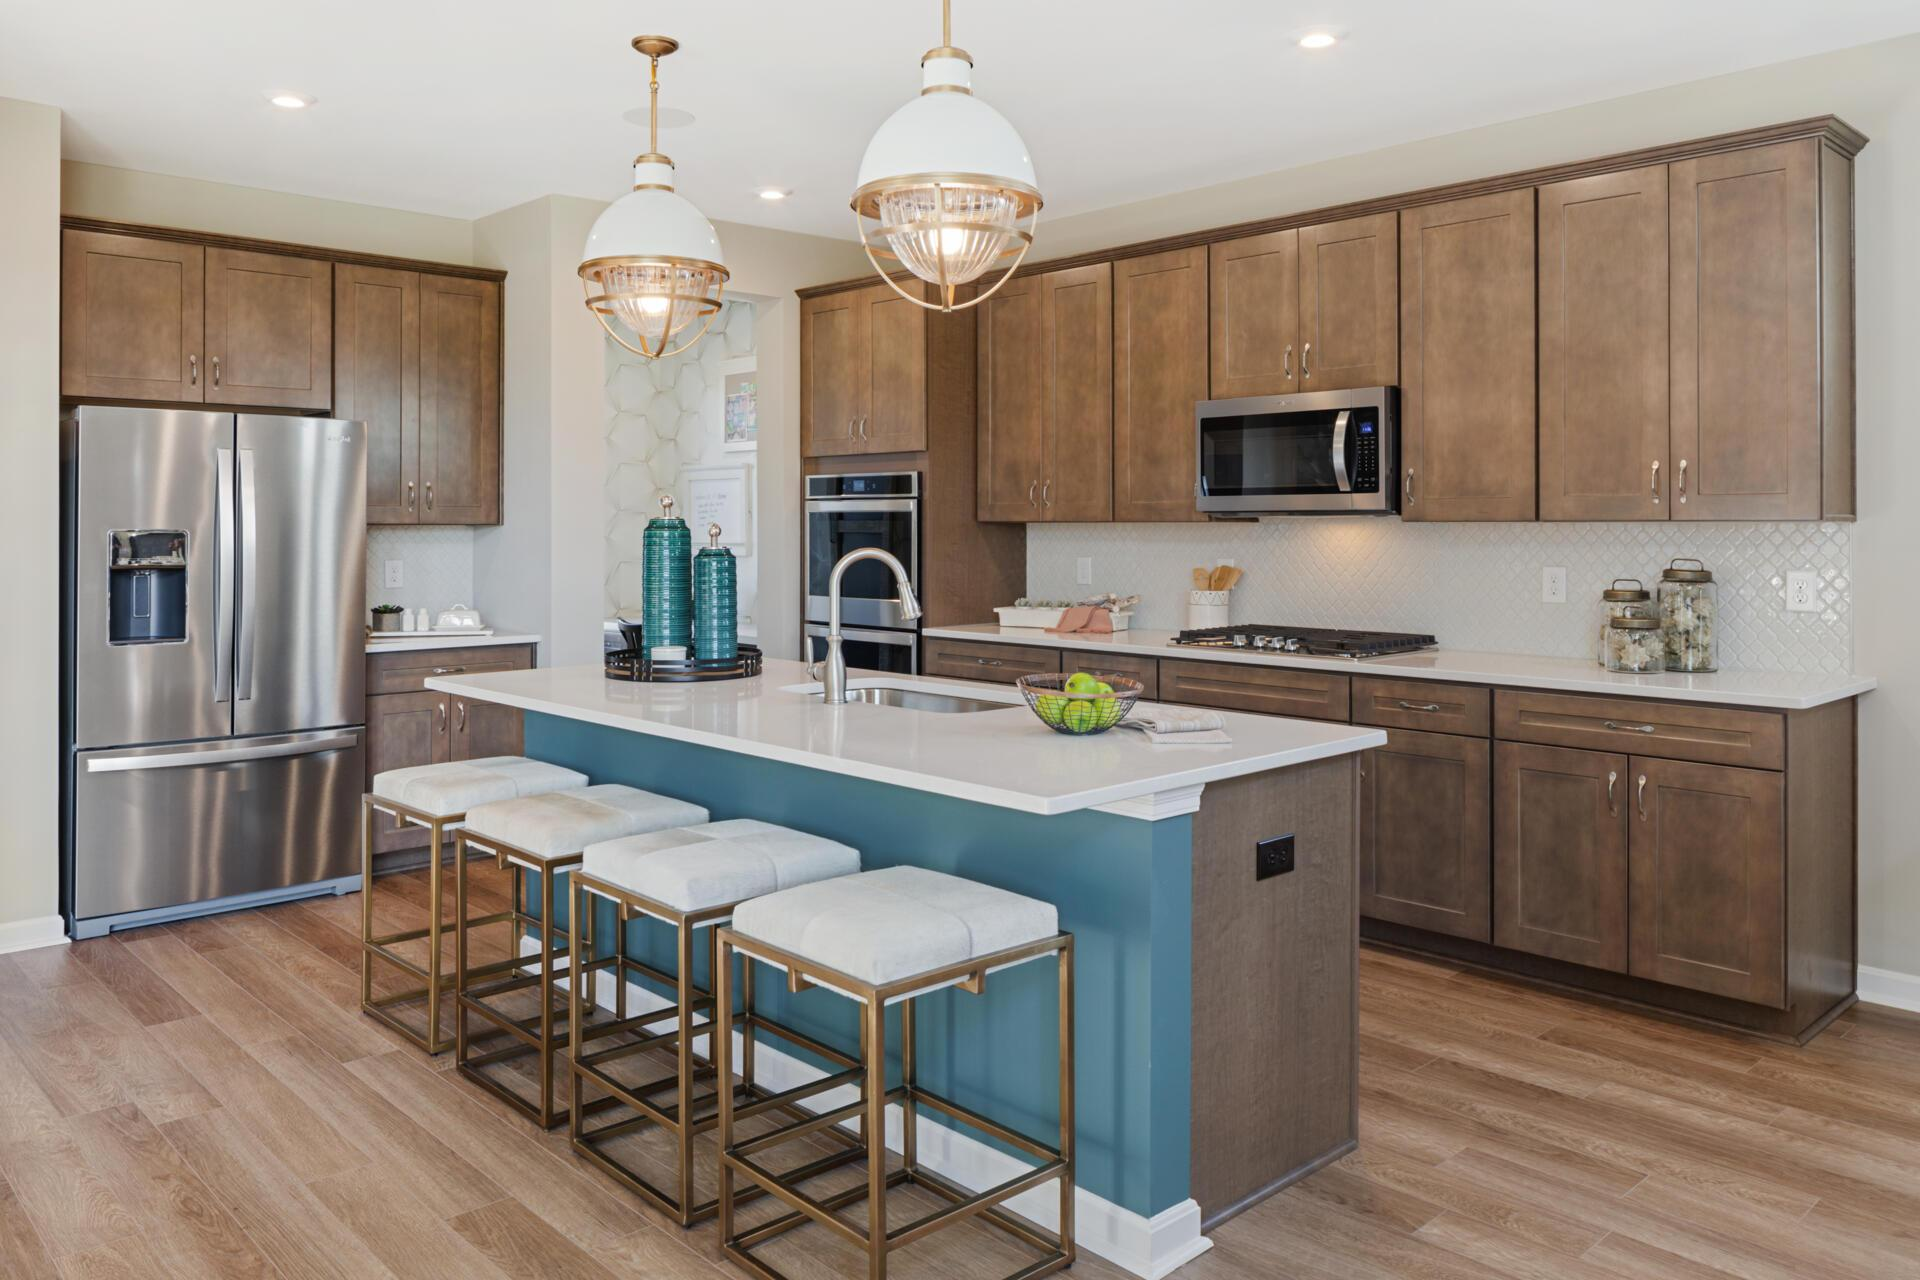 Kitchen featured in the Alwick By Drees Homes in Cincinnati, OH